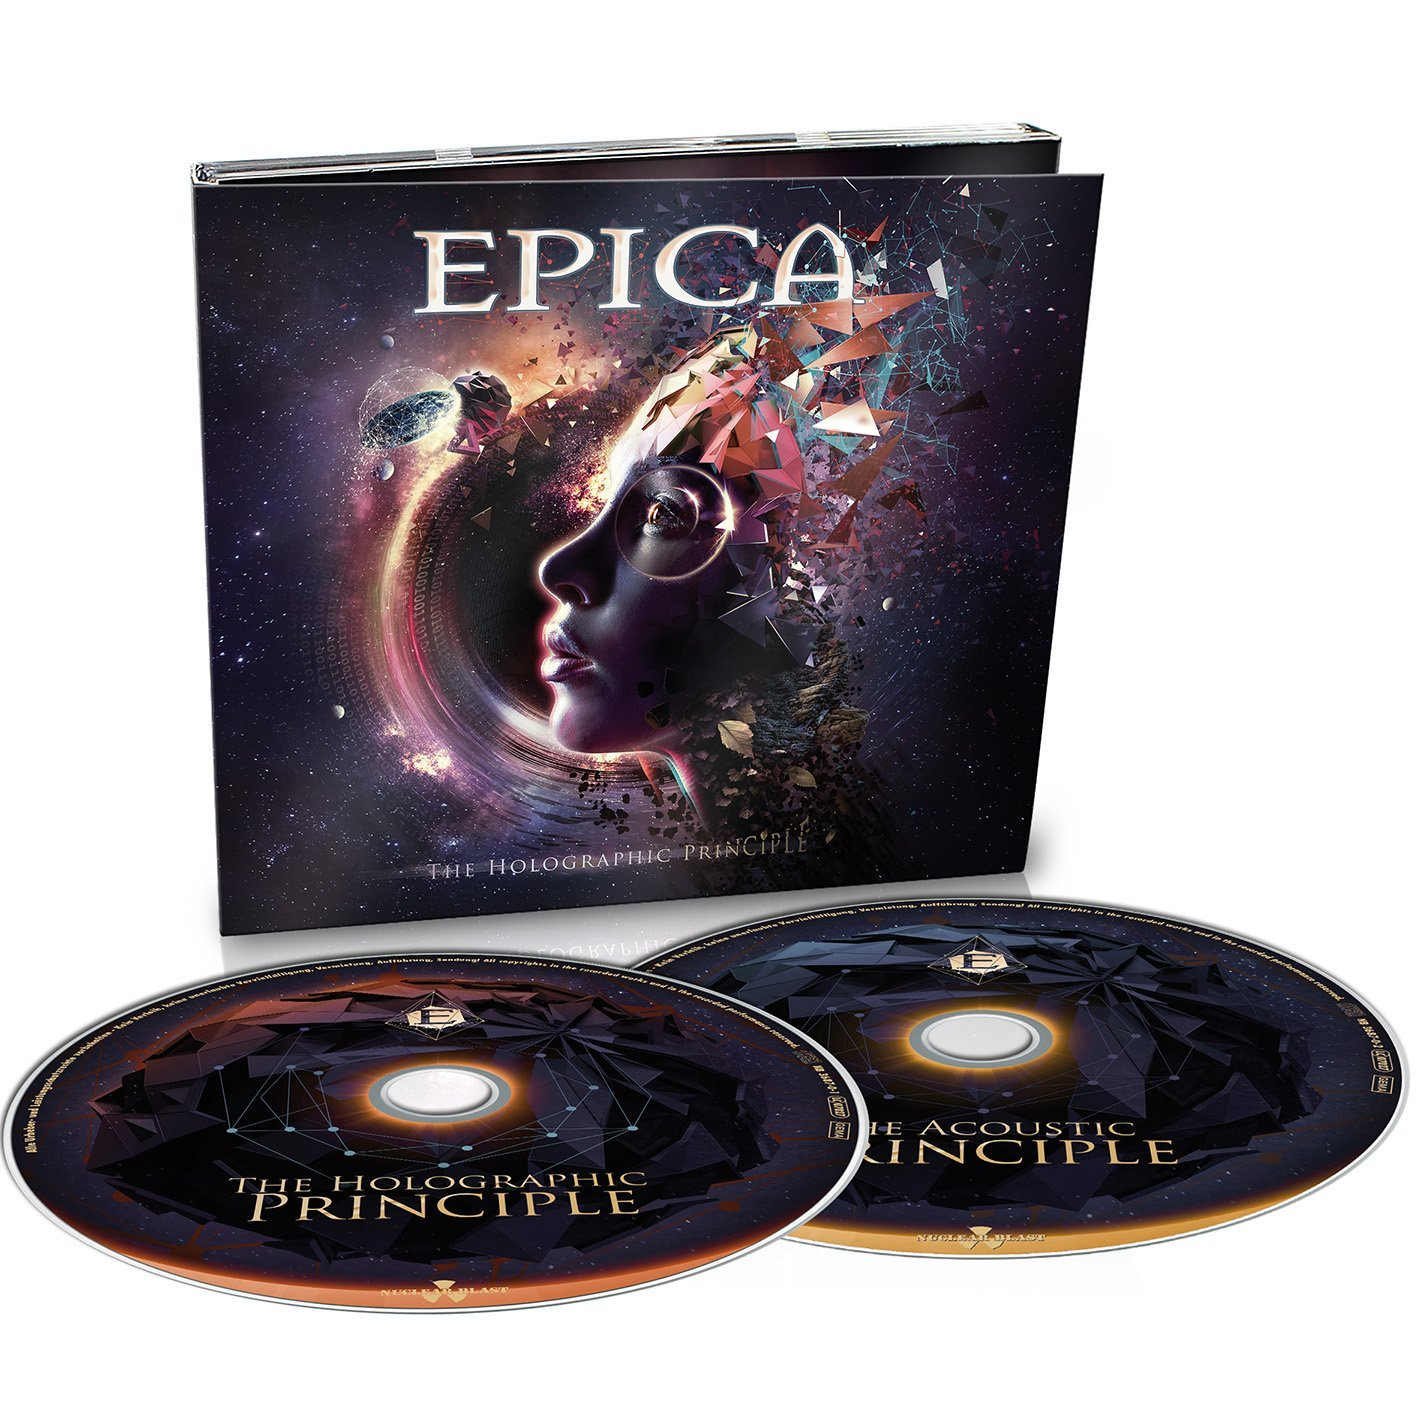 The Holographic Principle (Ed. Lda Deluxe)